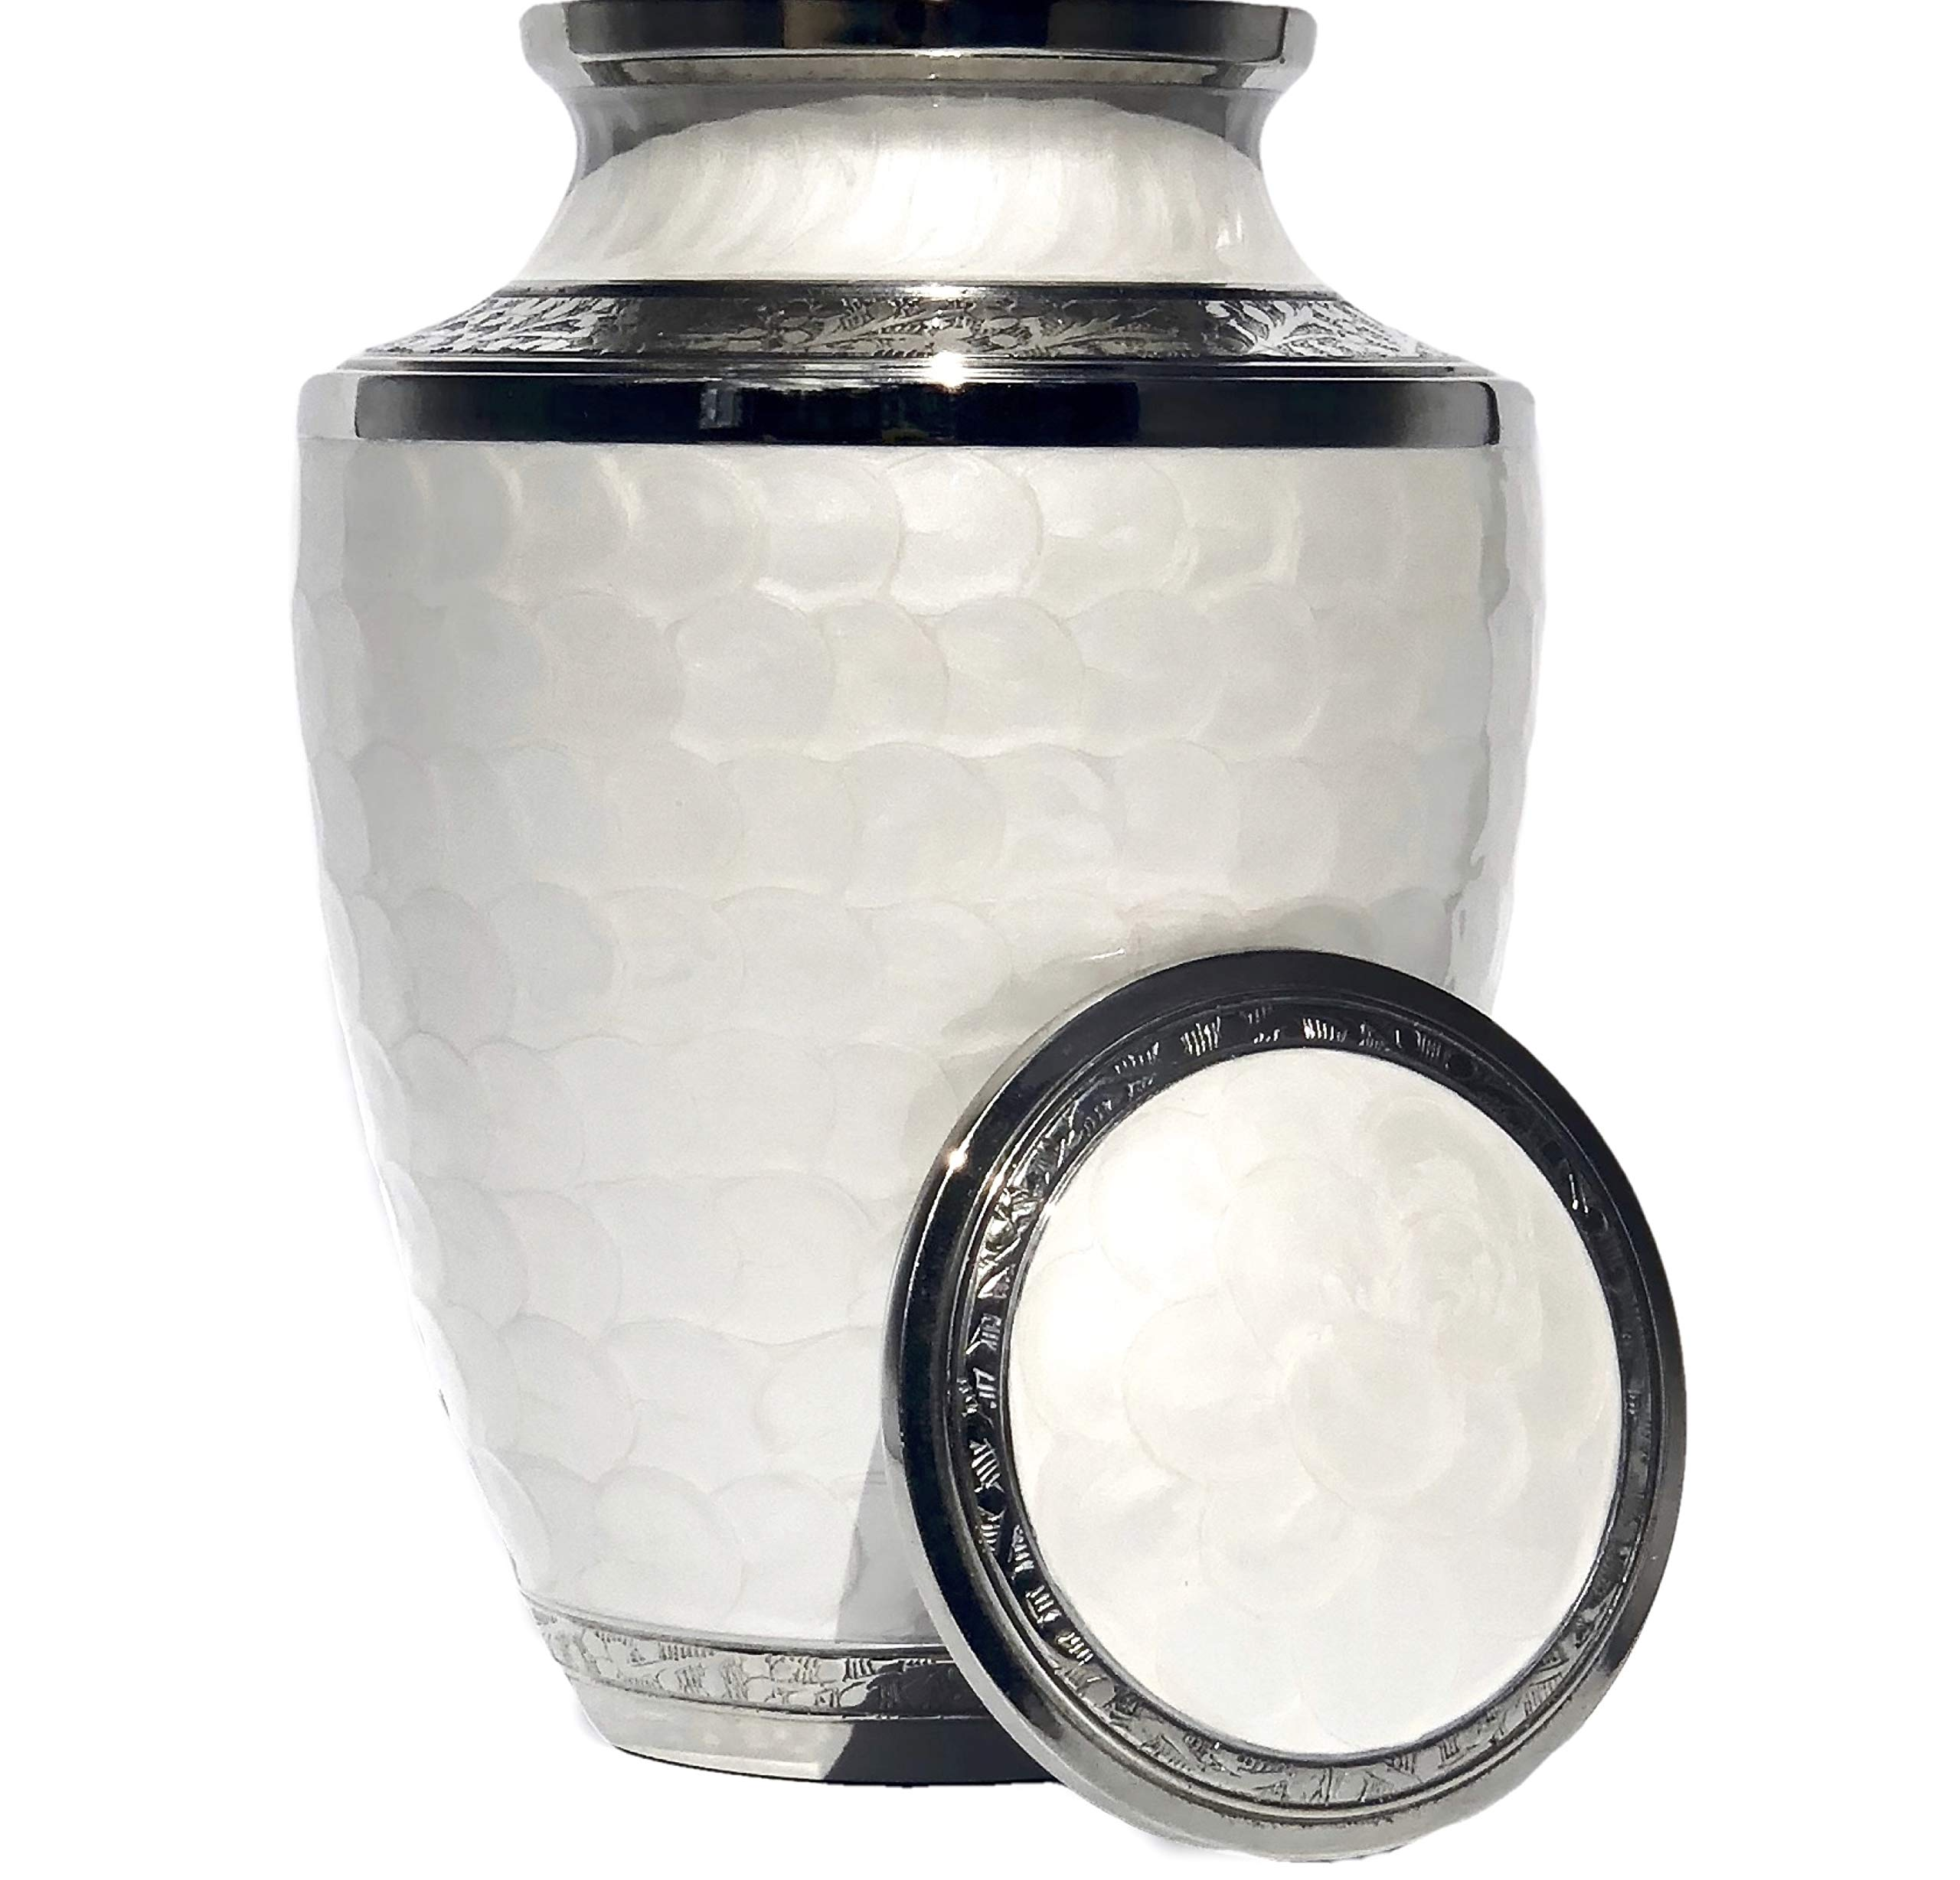 Eternal Harmony Cremation Urn for Human Ashes | Funeral Urn Carefully Handcrafted with Elegant Finishes to Honor and Remember Your Loved One | Adult Urn Large Size with Beautiful Velvet Bag by Eternal Harmony